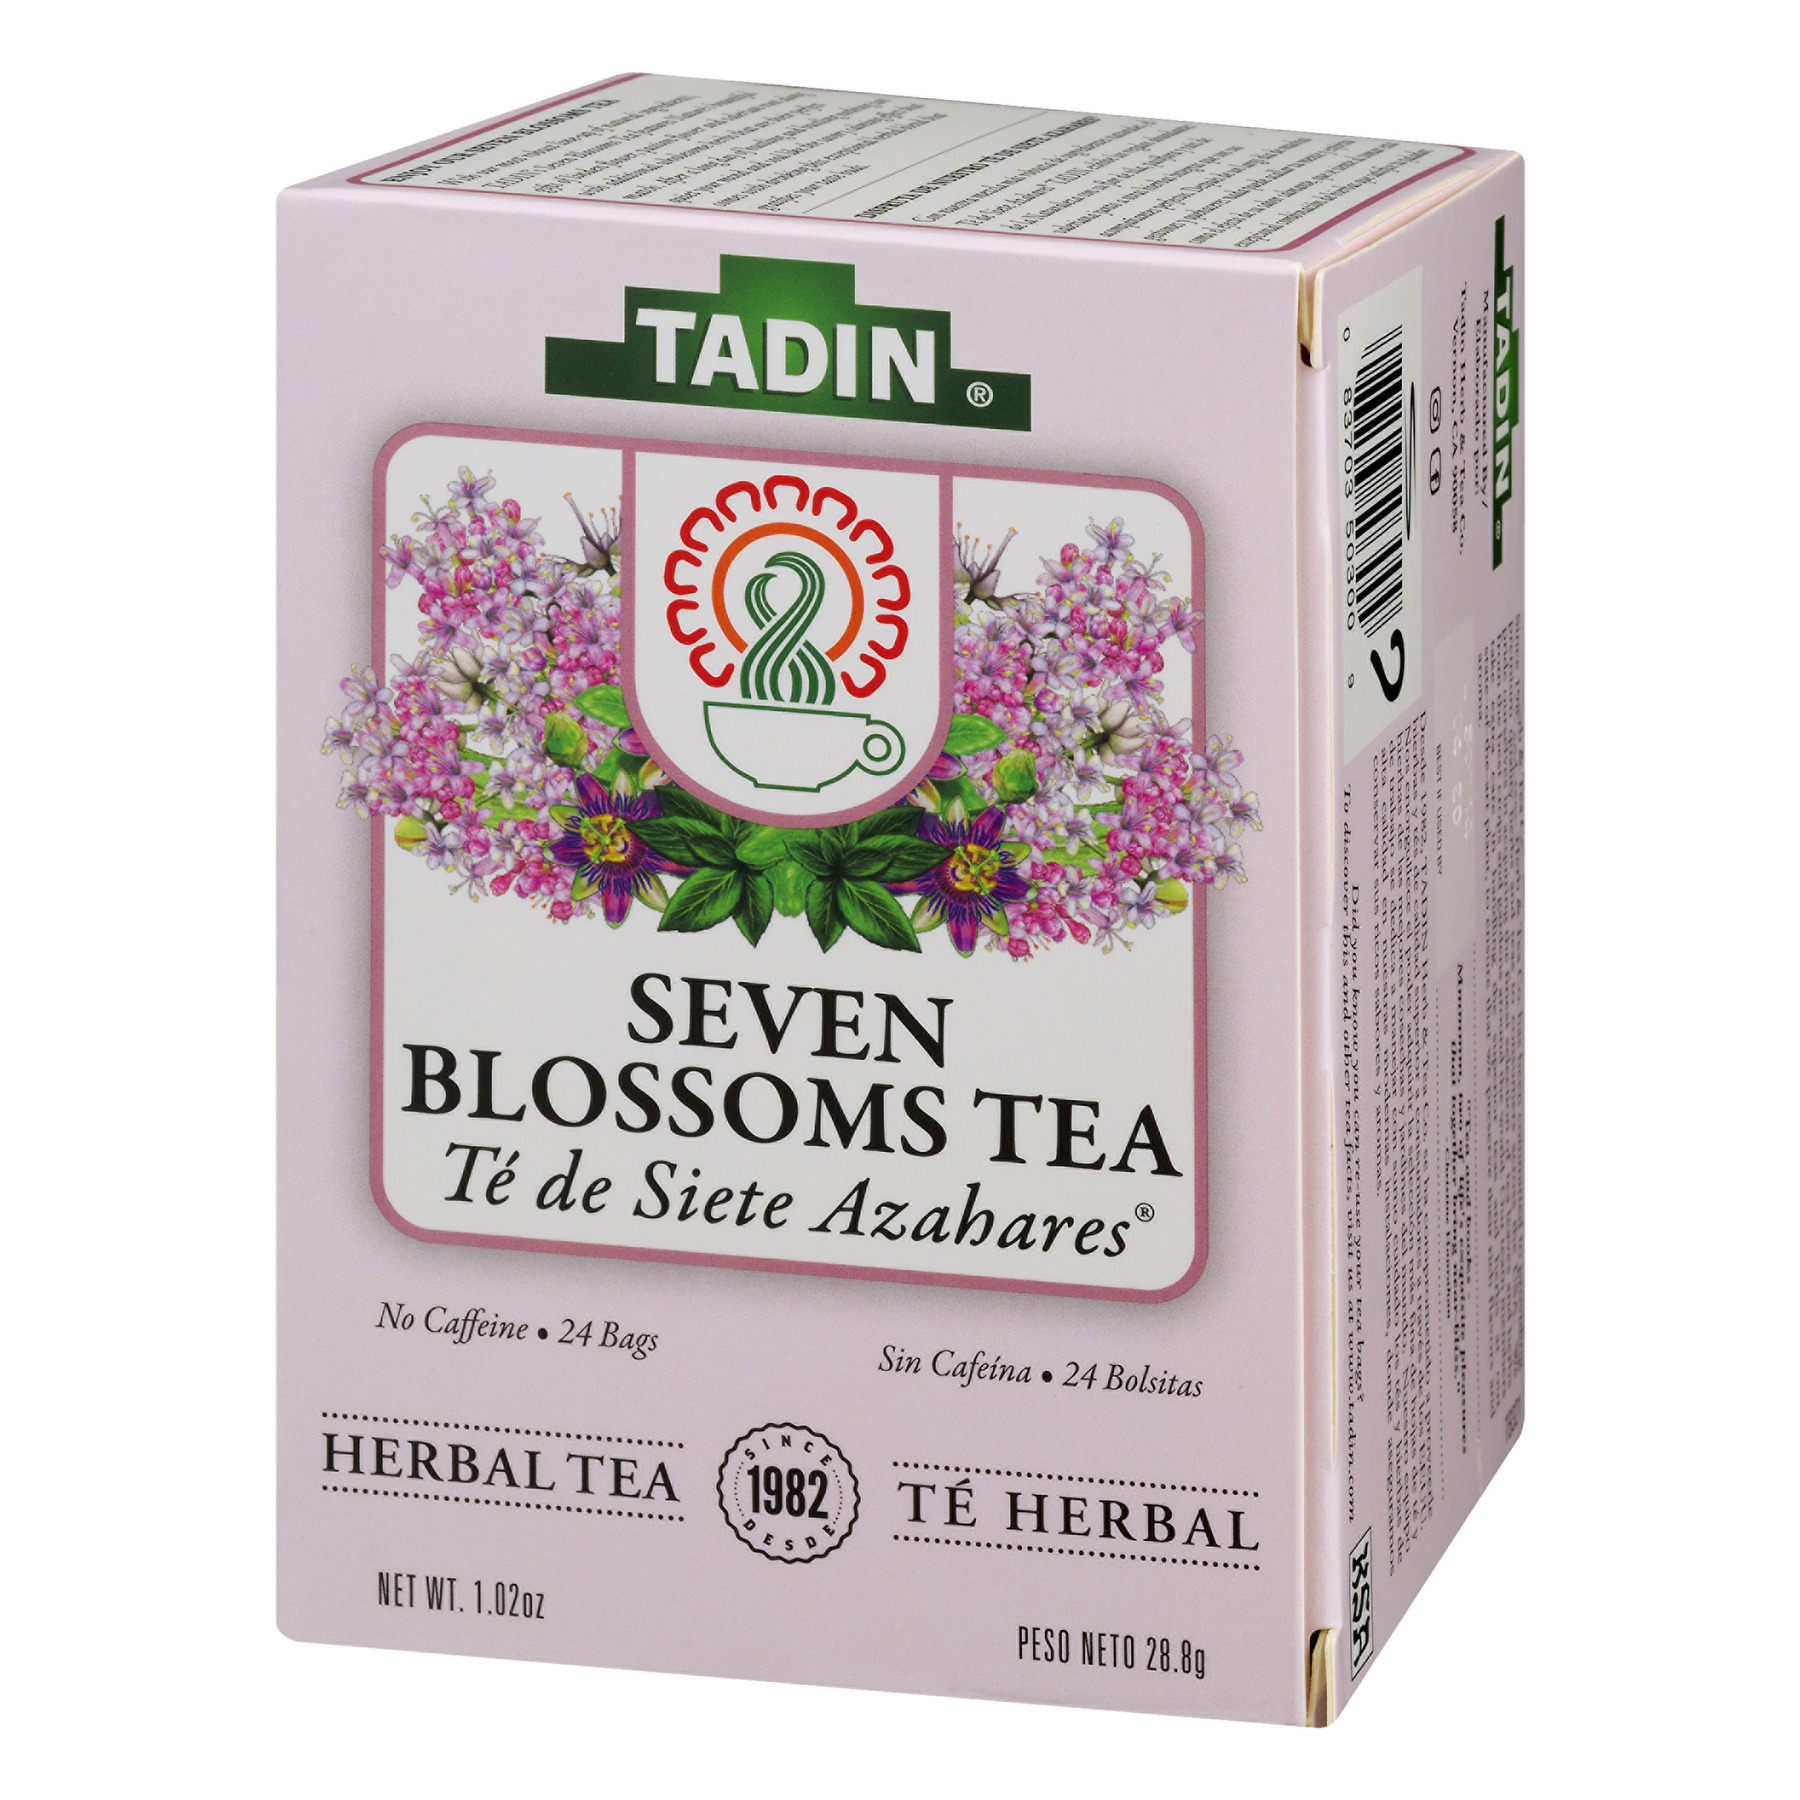 Tadin Herb Tea Co Seven Blossoms Herbal Tea Caffeine Free 24